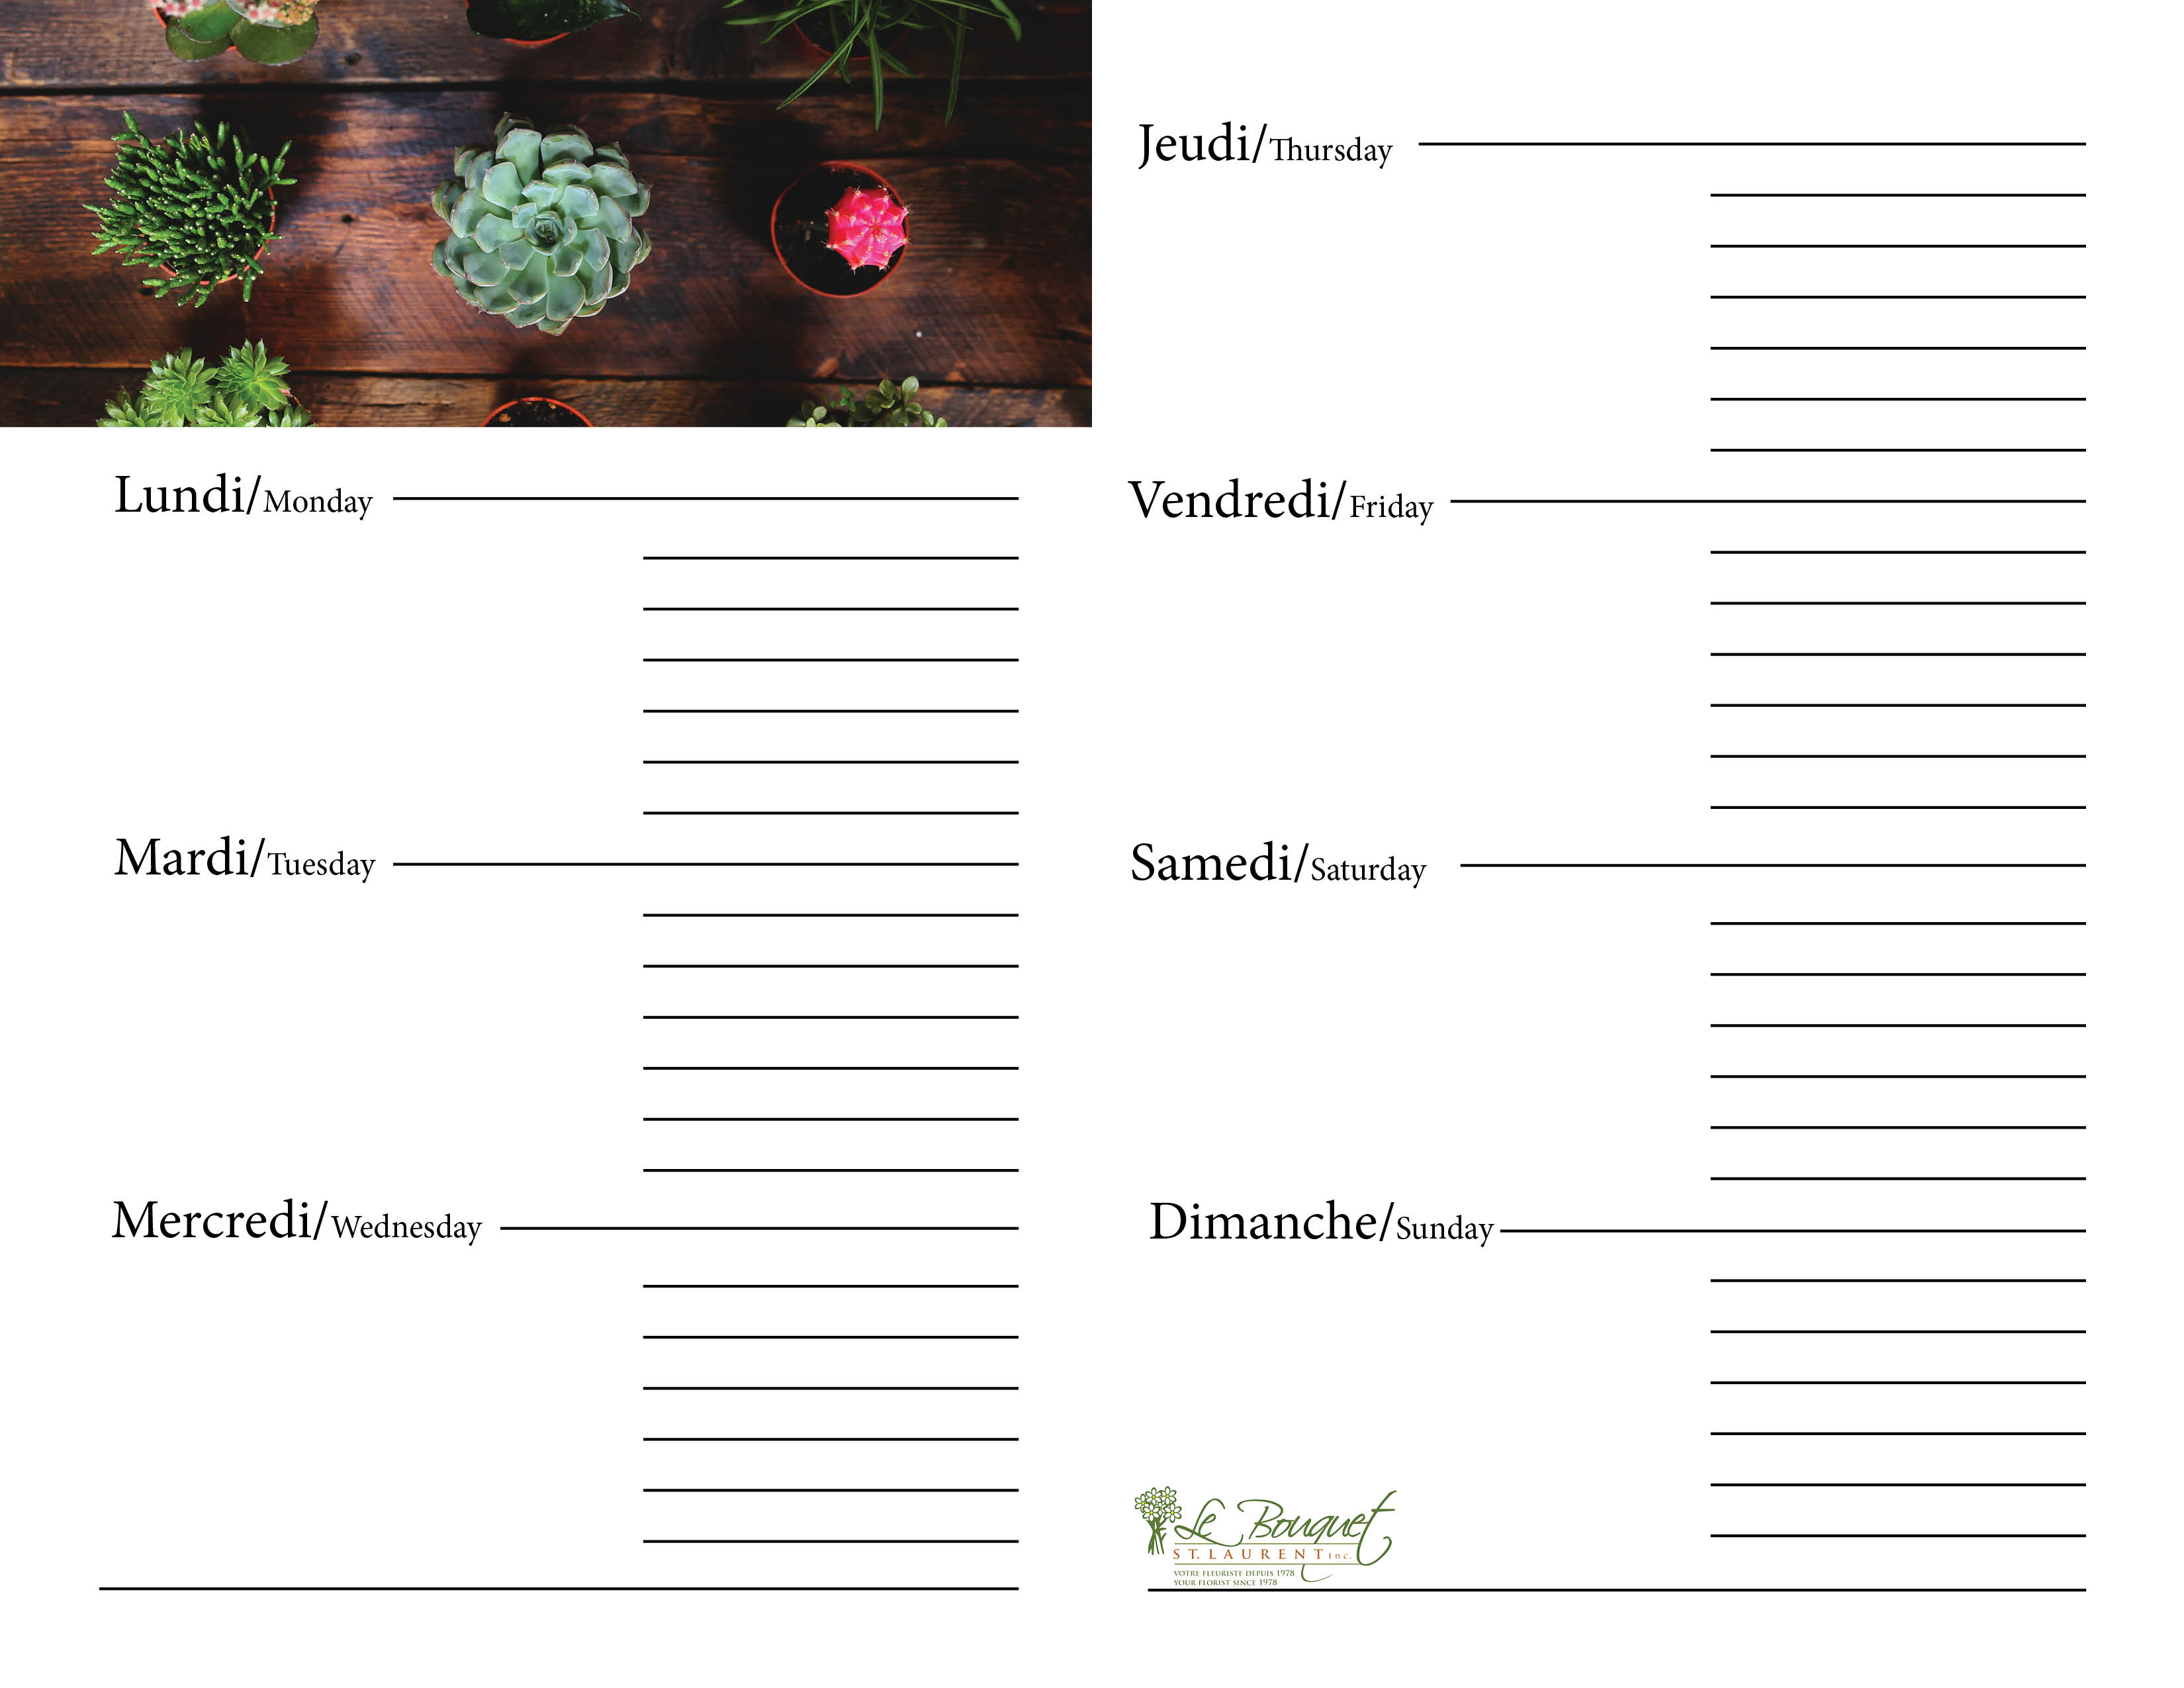 Free downloadable calendar journal with succulents from Montreal flower shop Le Bouquet St Laurent